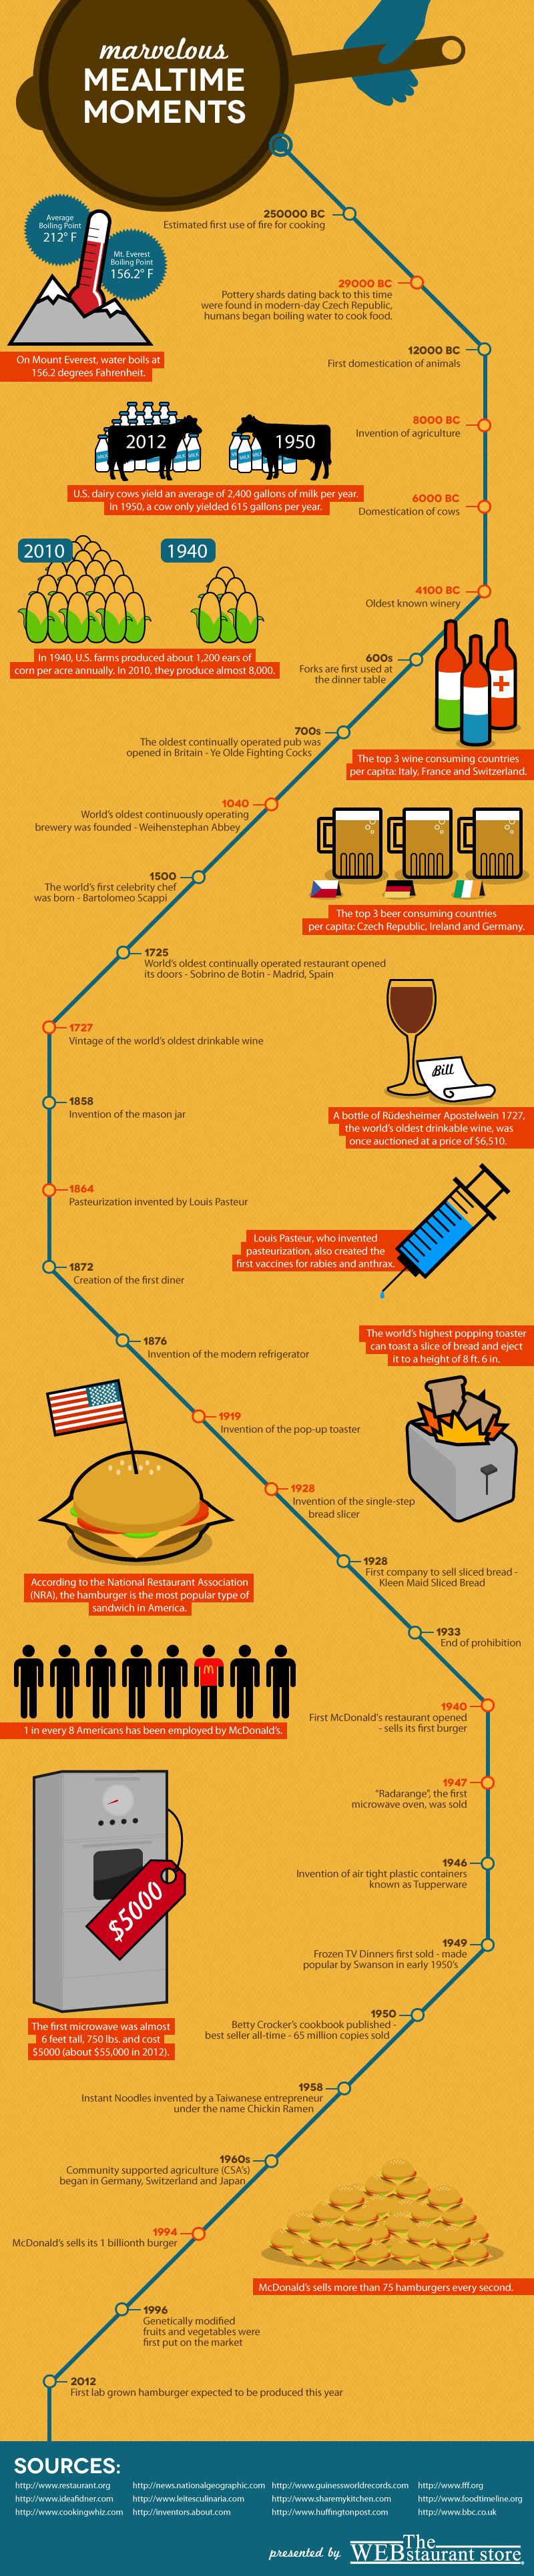 Mealtime Moments Infographic